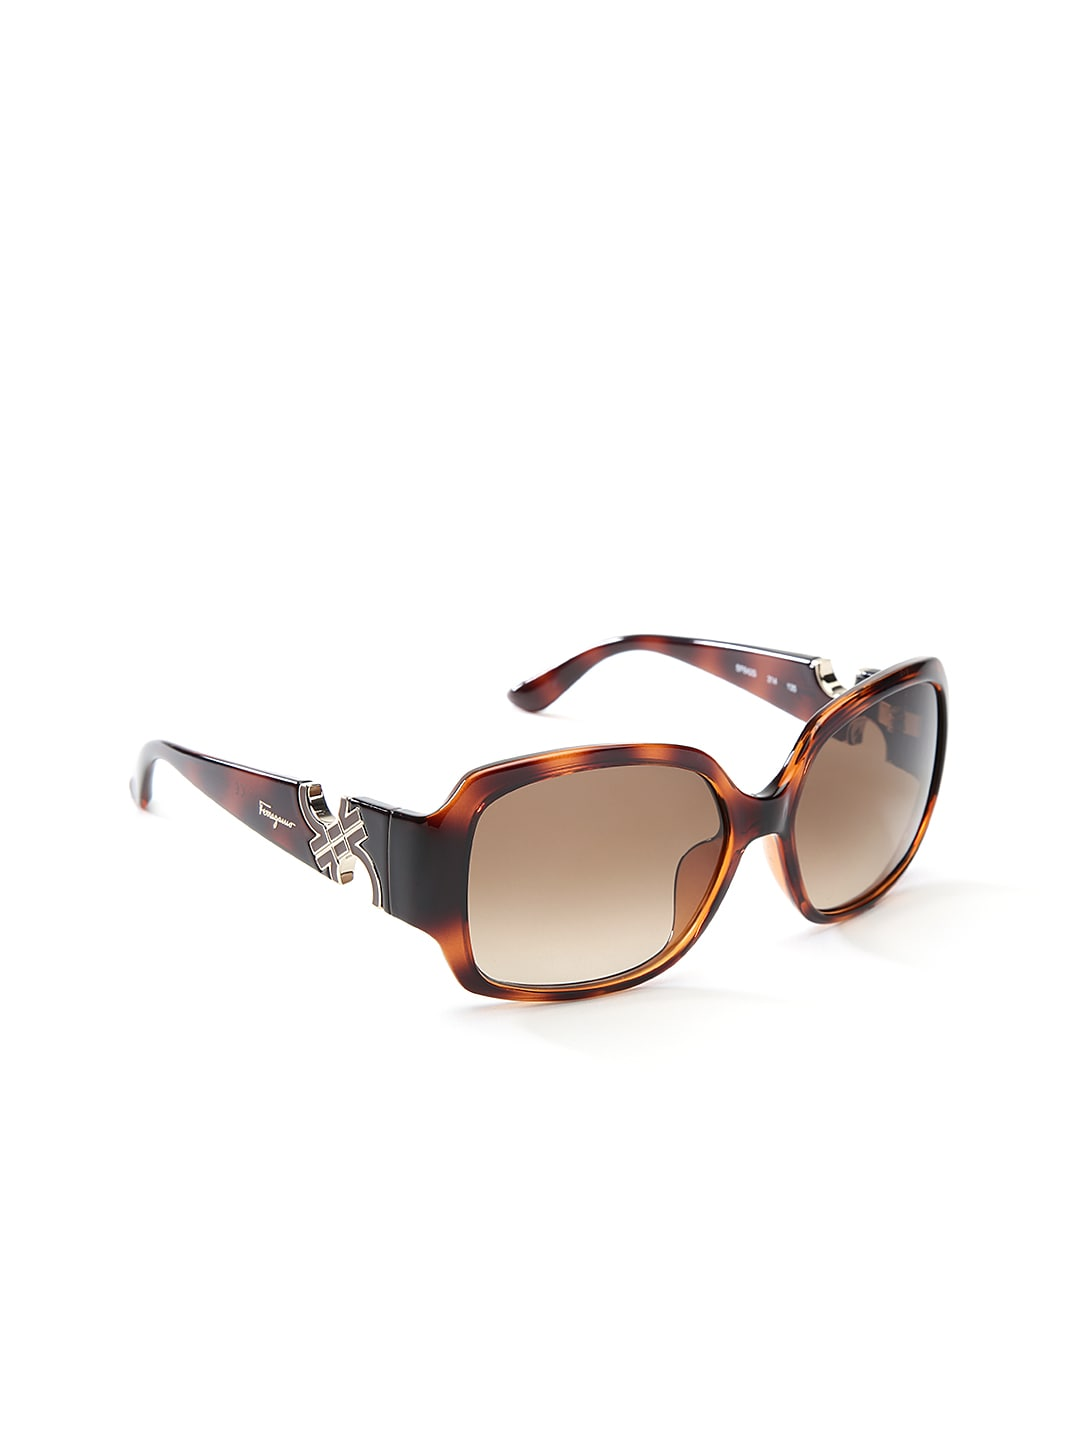 Salvatore Ferragamo Women Animal Print Square Sunglasses SF642S 214